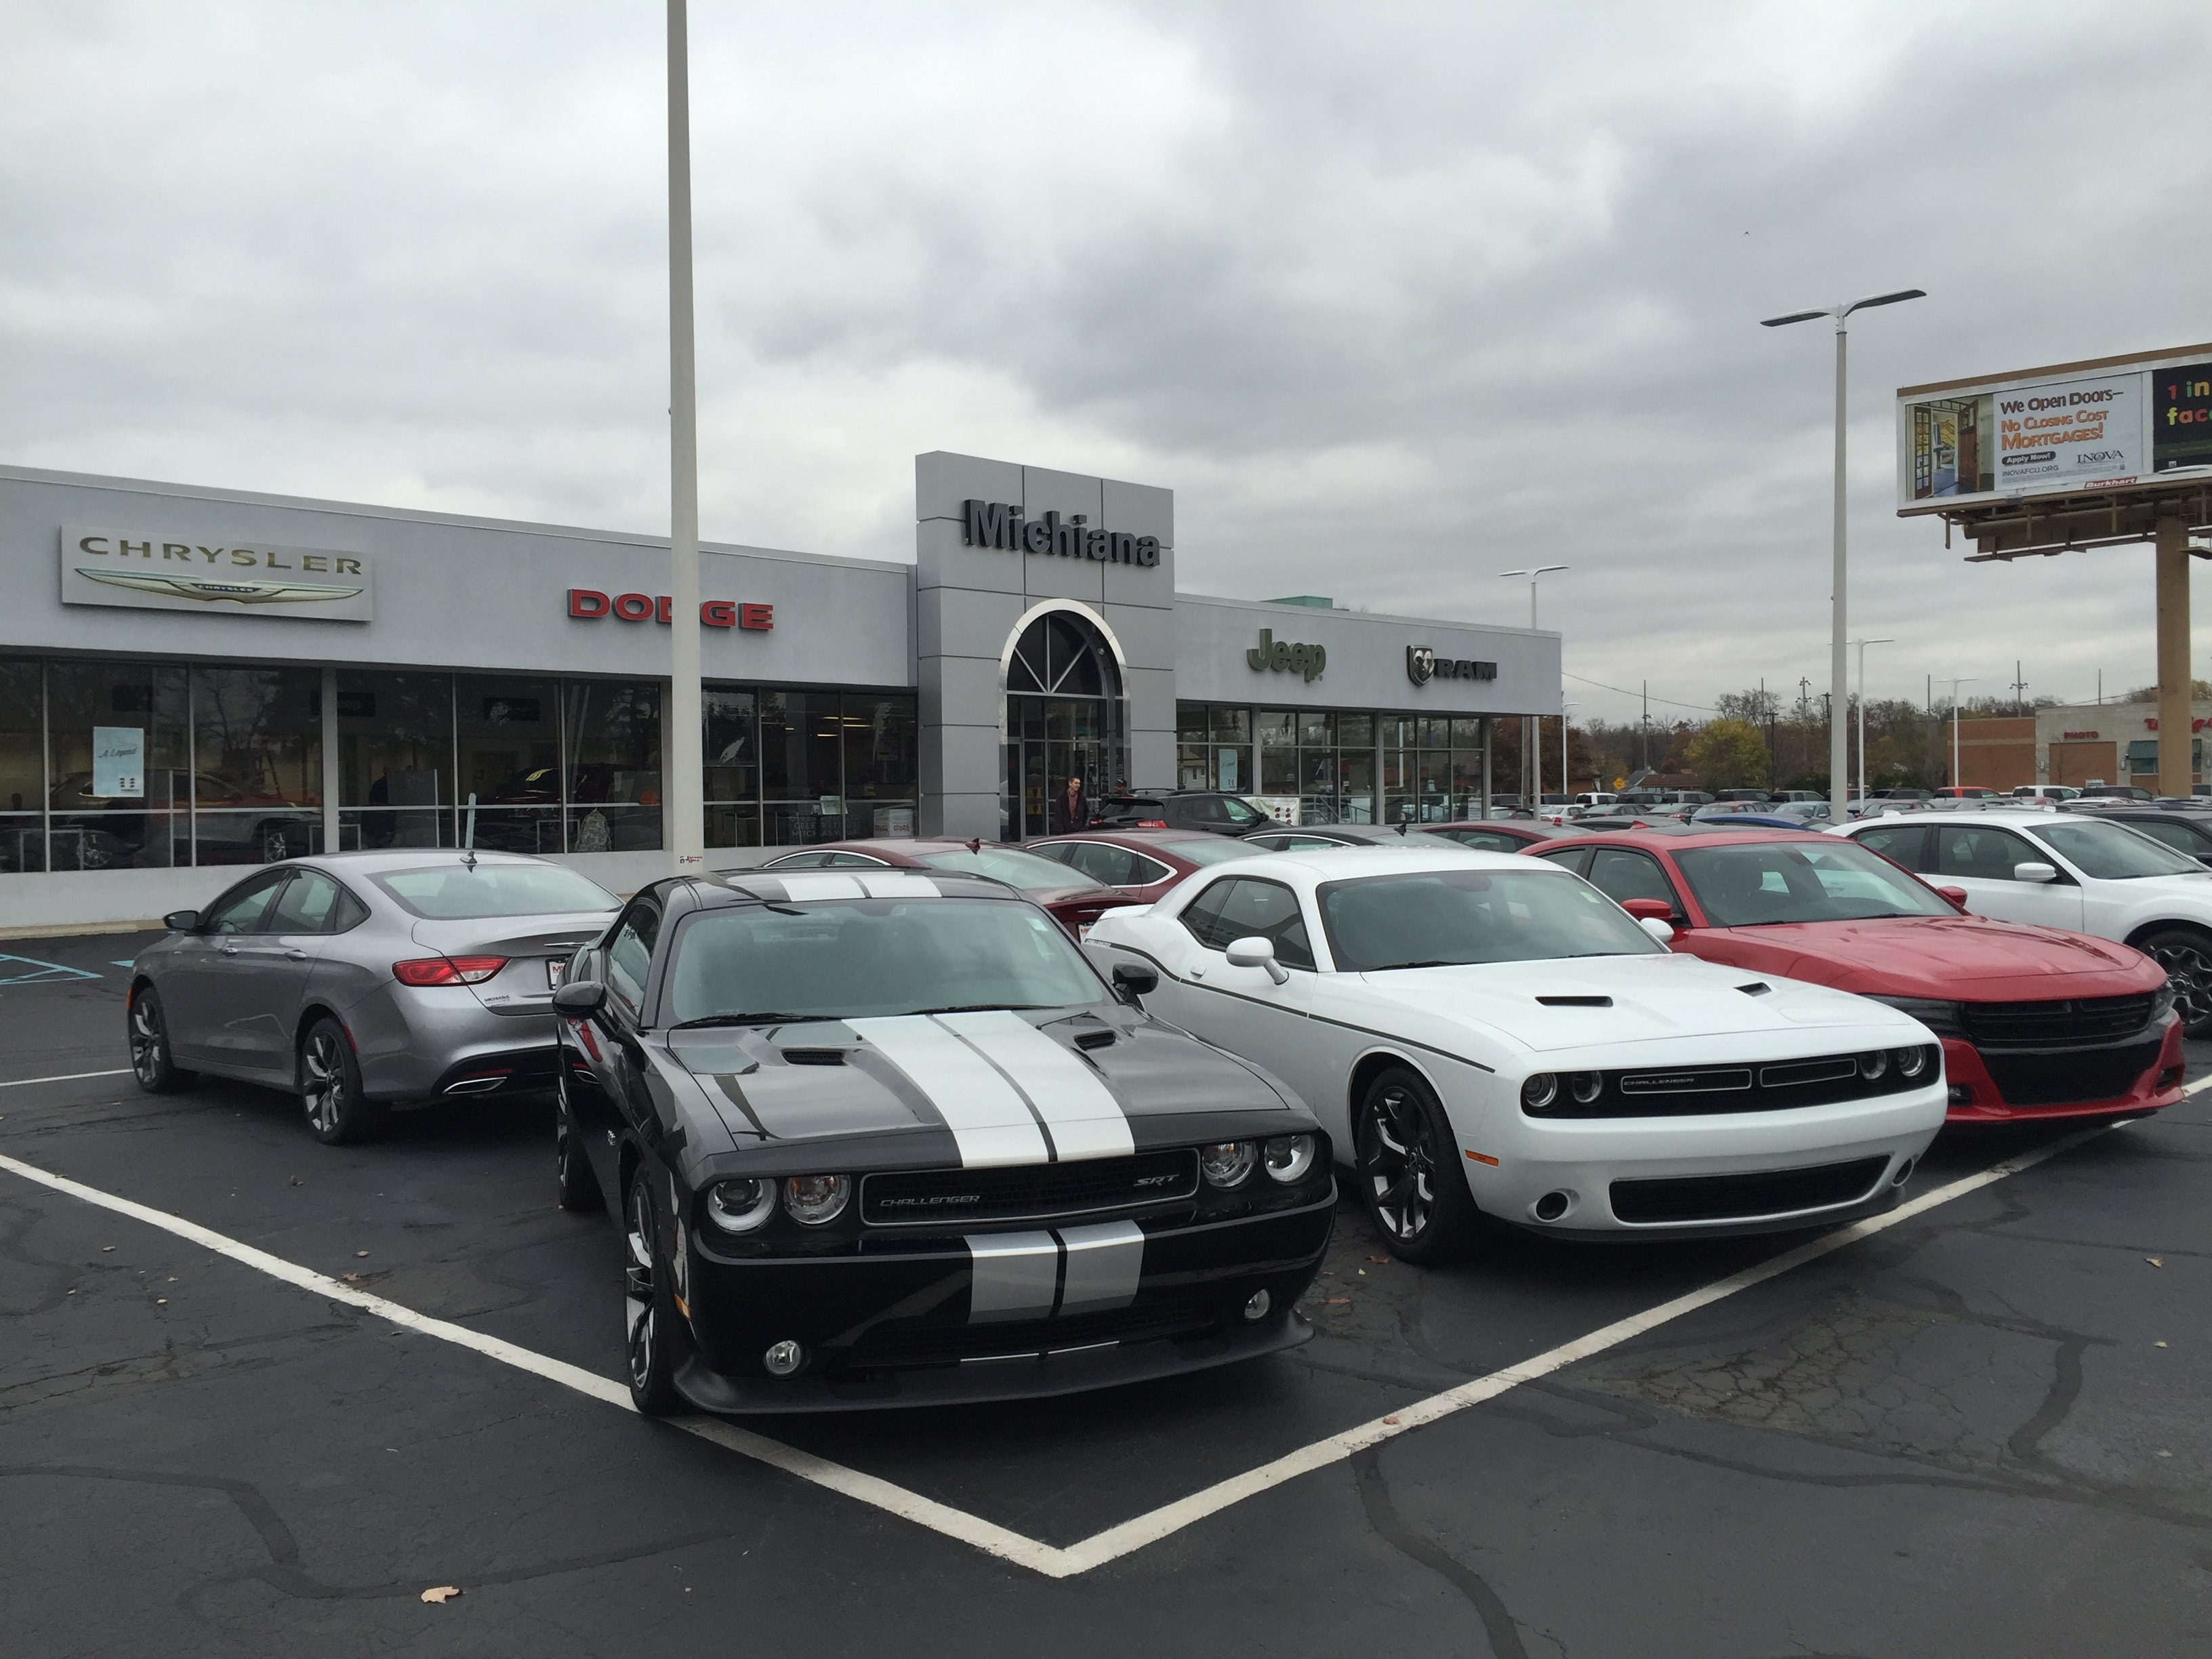 mi dodge ram grand make cherokee new htm inquiry northland dealership an chrysler jeep